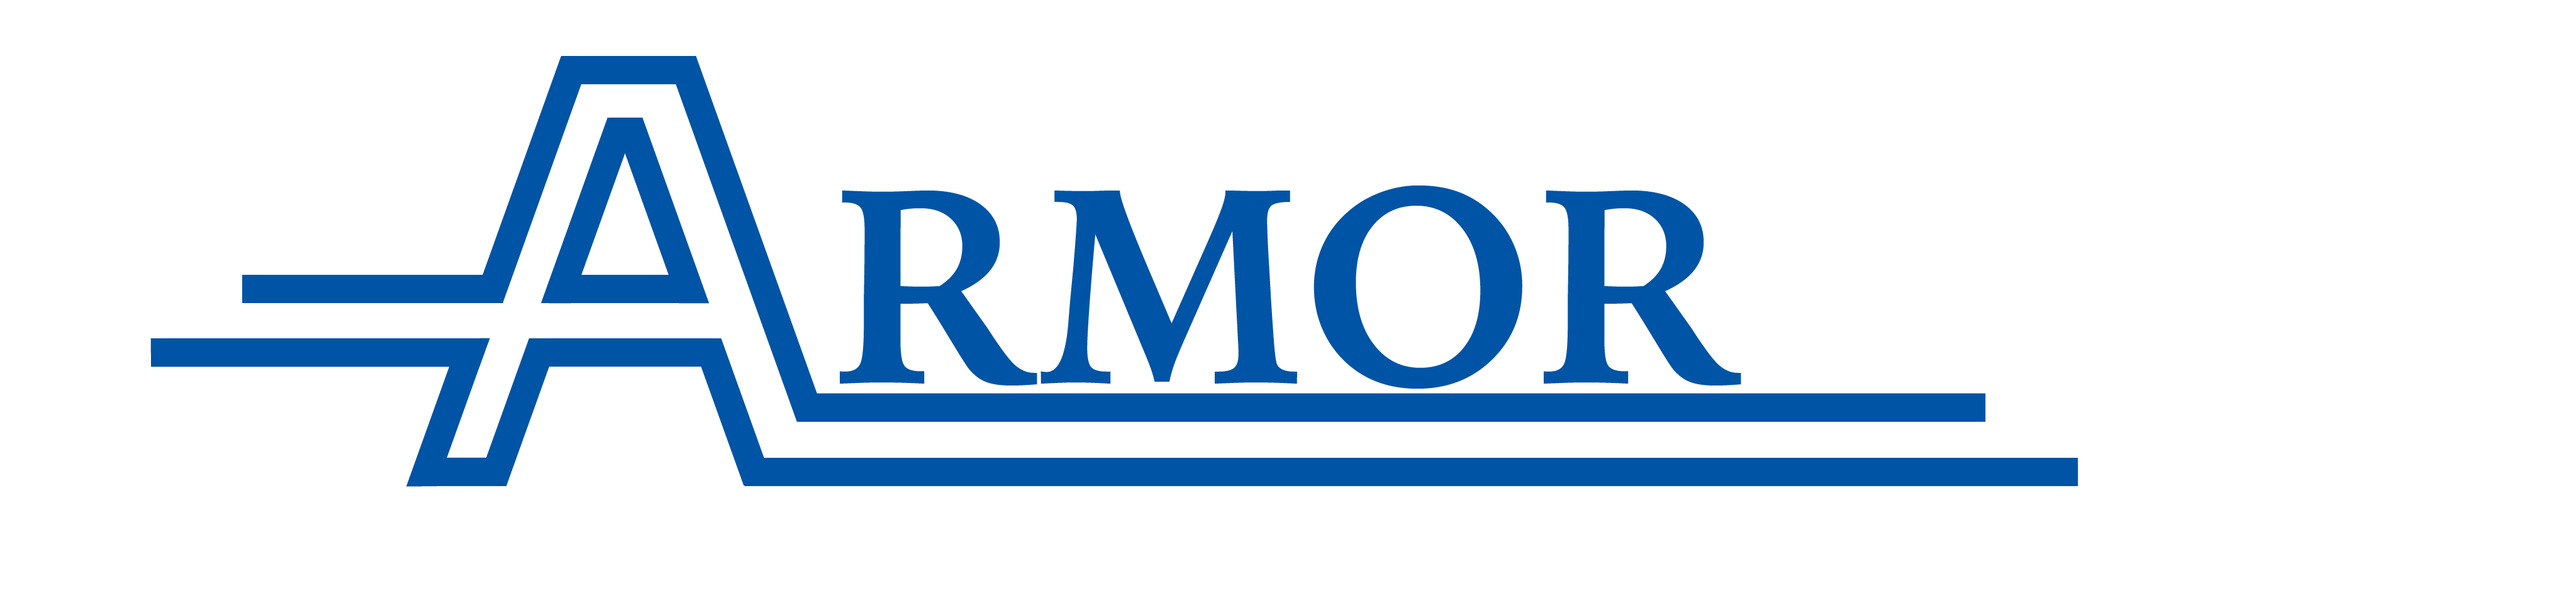 Armor Industries Ltd.